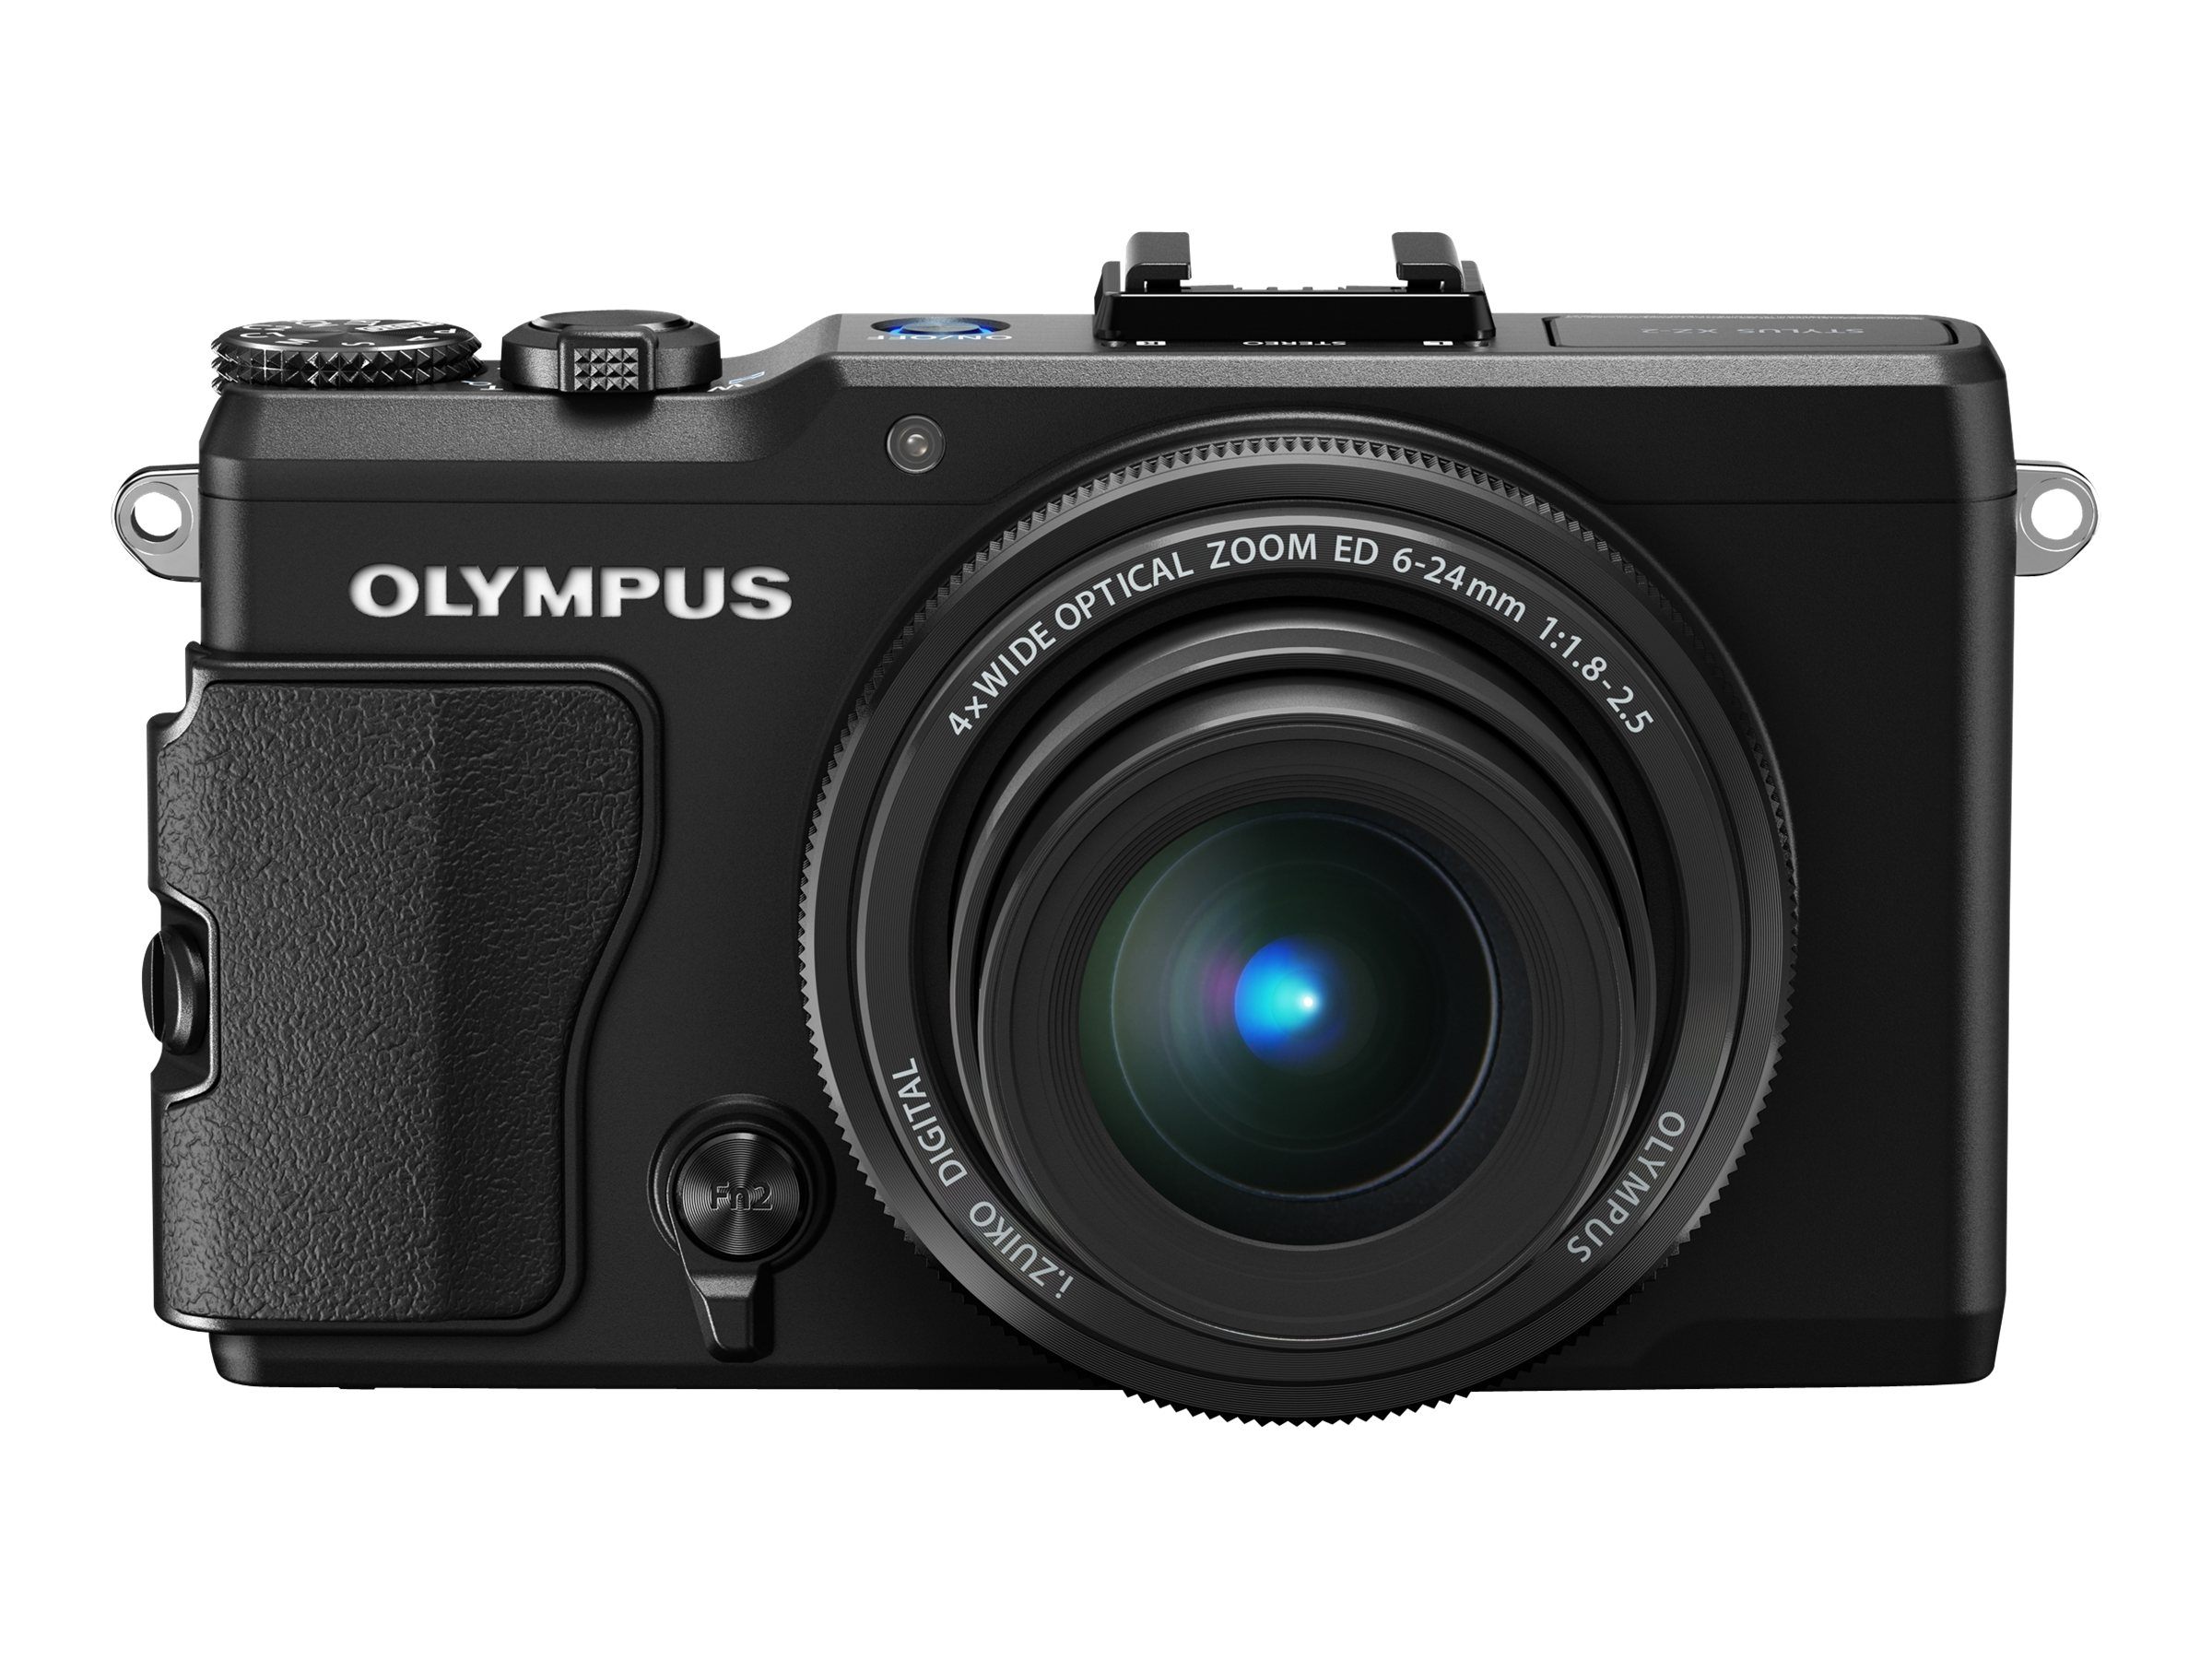 Olympus STYLUS XZ-2 iHS Digital Camera, 12MP, 4x Zoom, Black, V101020BU000